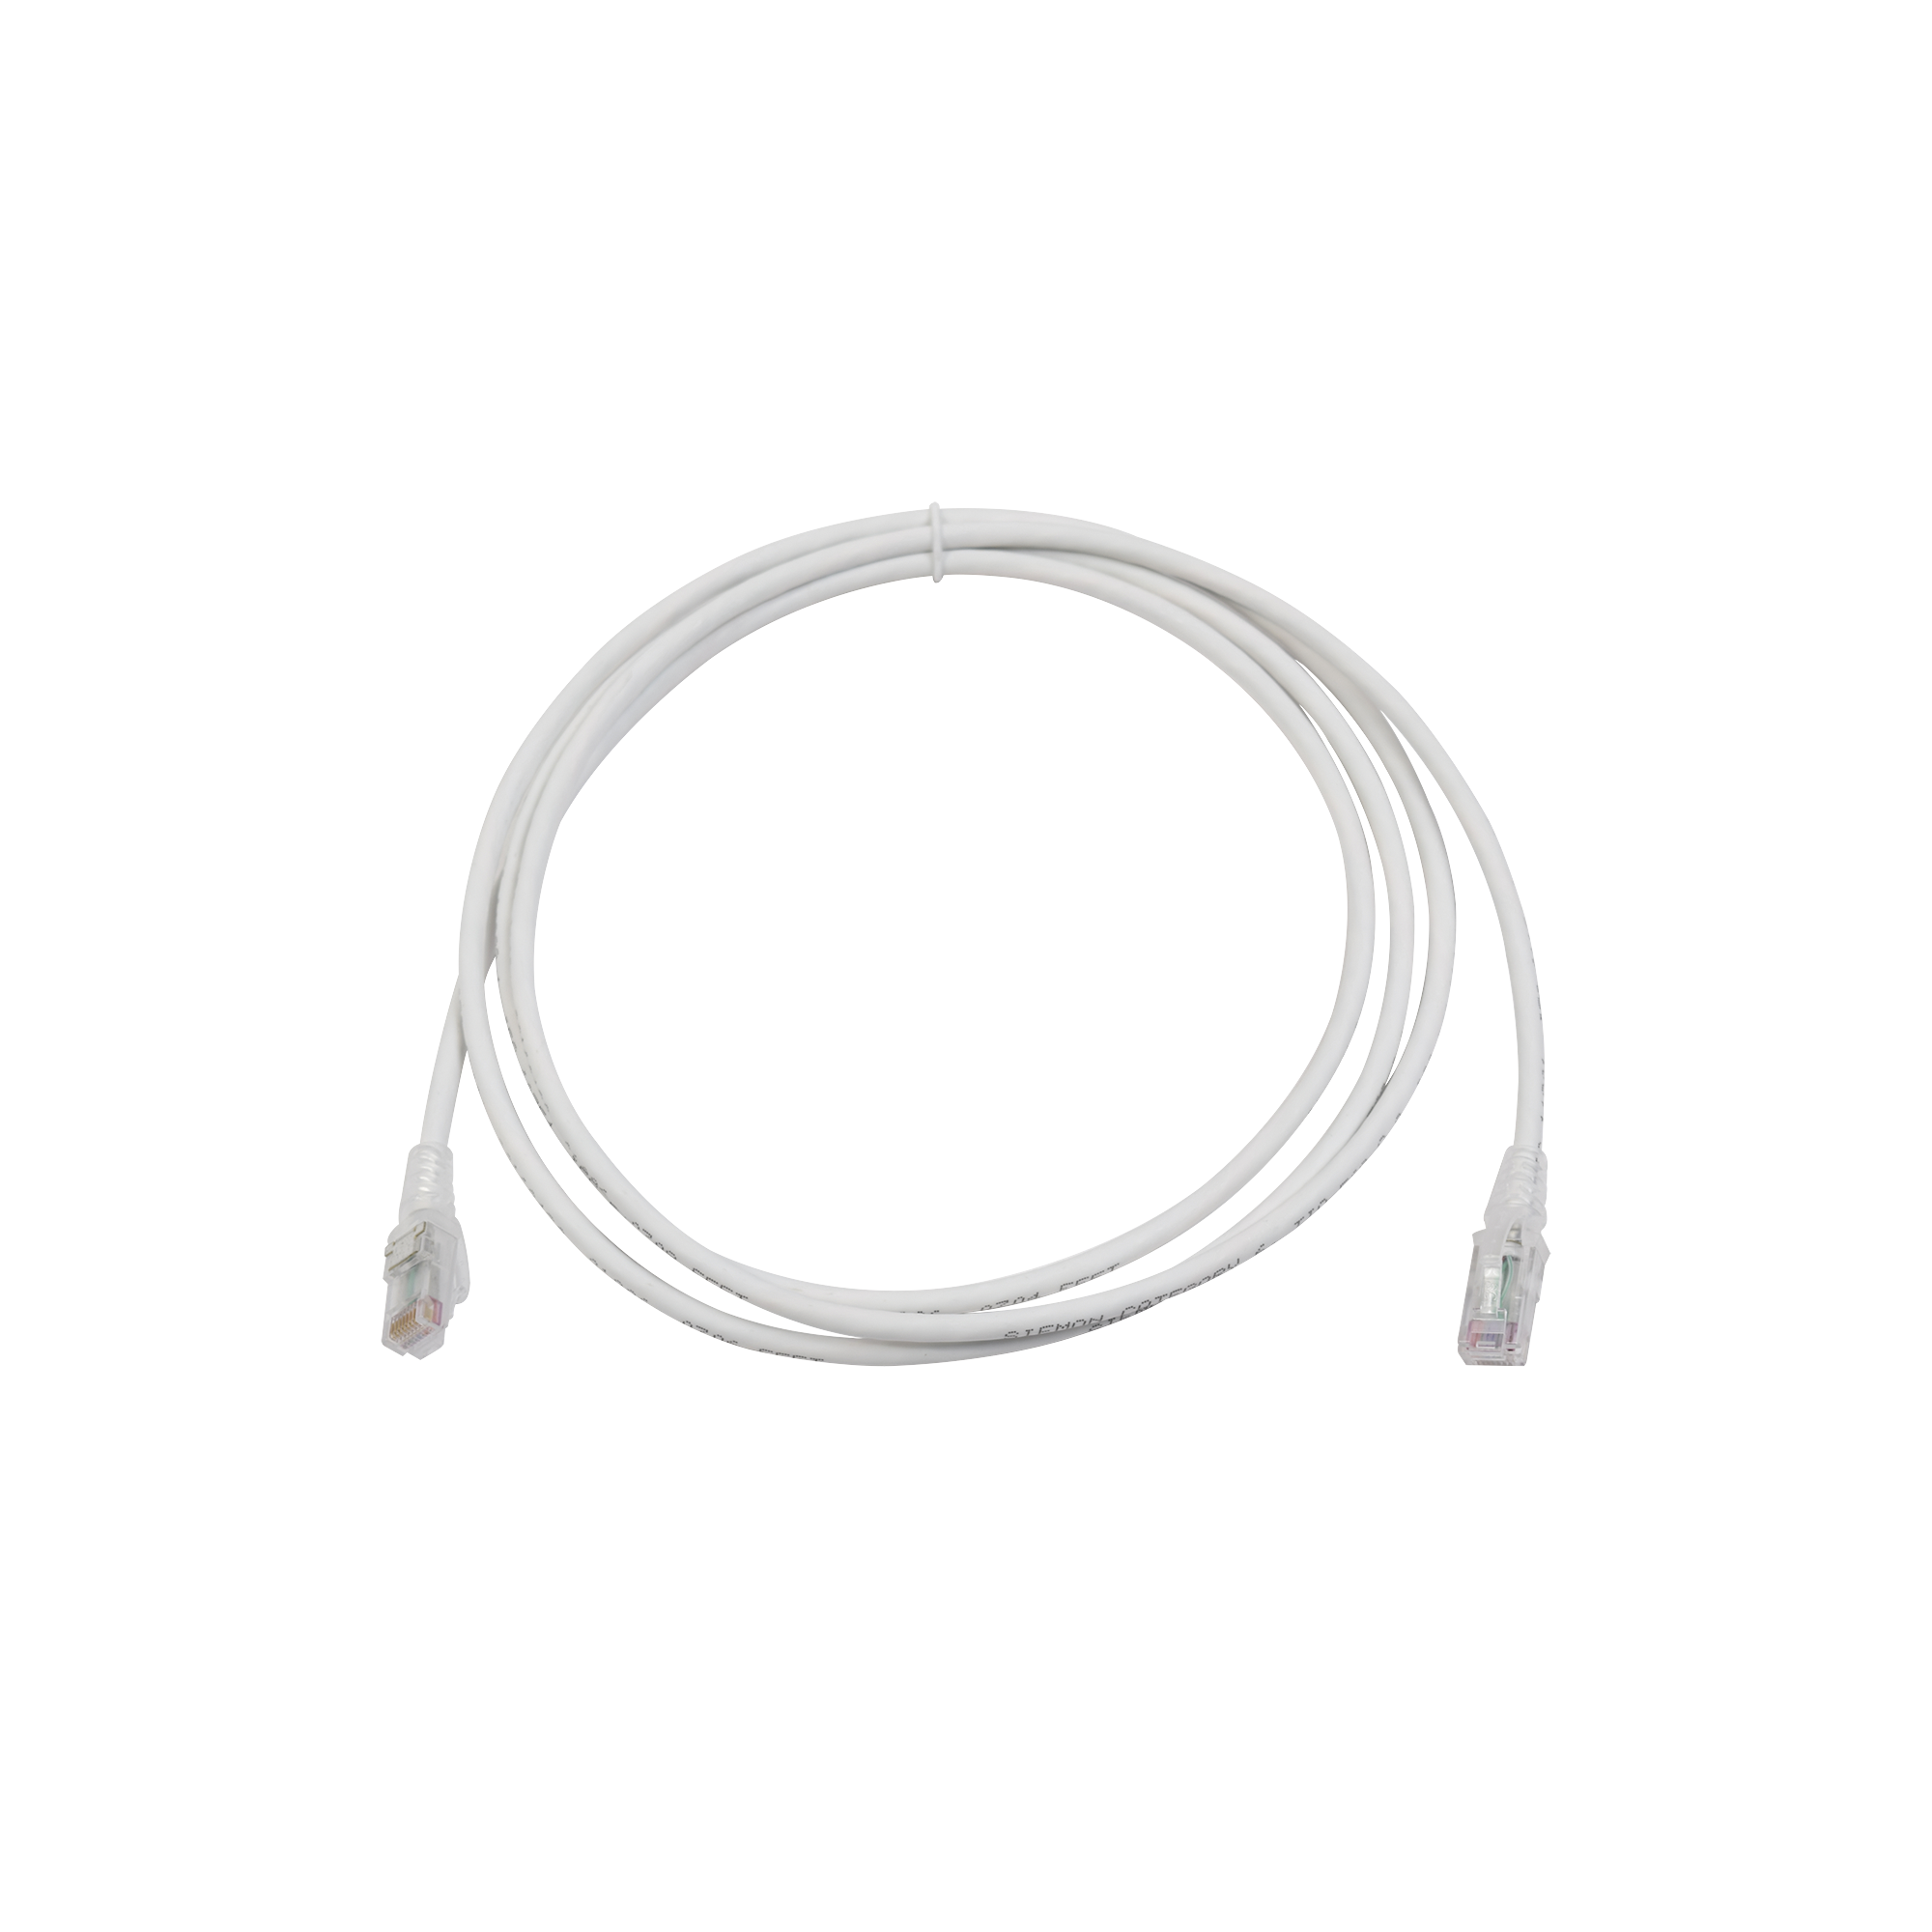 Patch Cord MC6 Modular Cat6 UTP, CM/LS0H, 7ft, Color Blanco, Versión Bulk (Sin Empaque Individual)